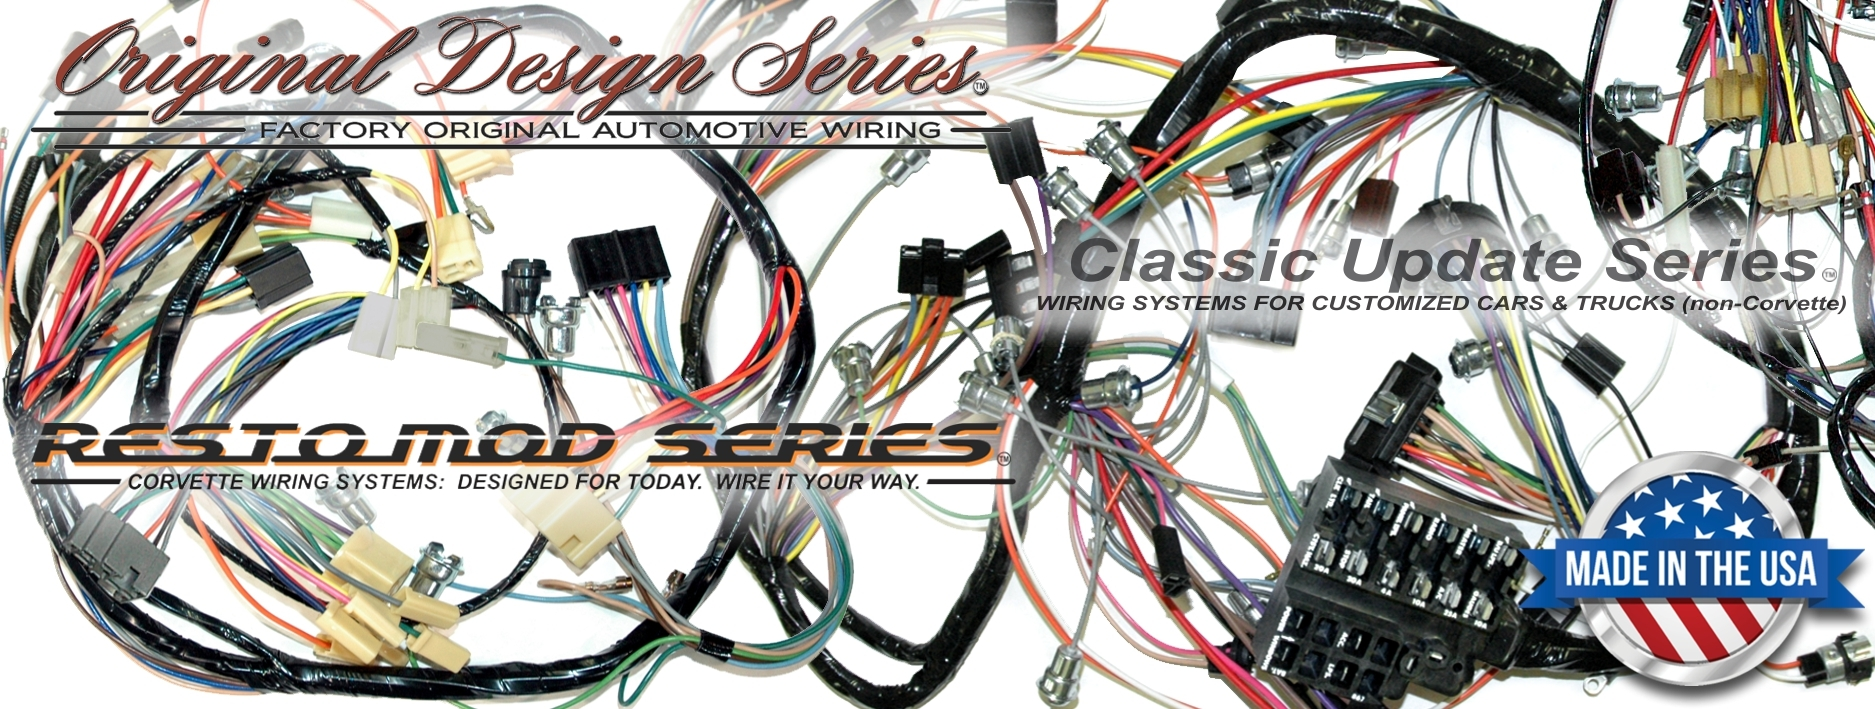 hight resolution of exact oem reproduction wiring harnesses and restomod wiring systems 1948 cadillac wiring harness